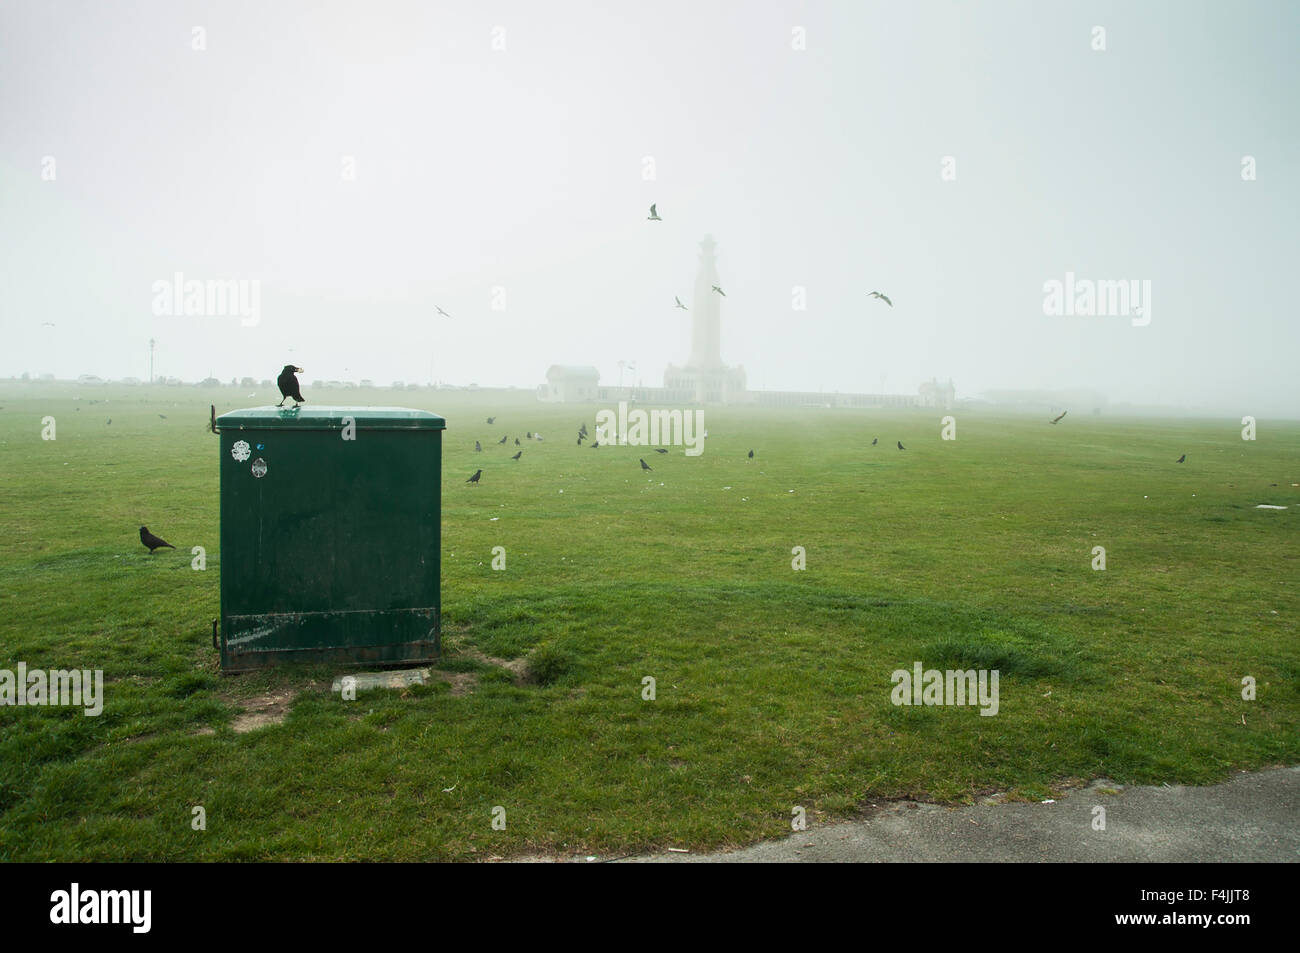 Southsea seafront  on a cloudy and foggy day with crows. Stock Photo